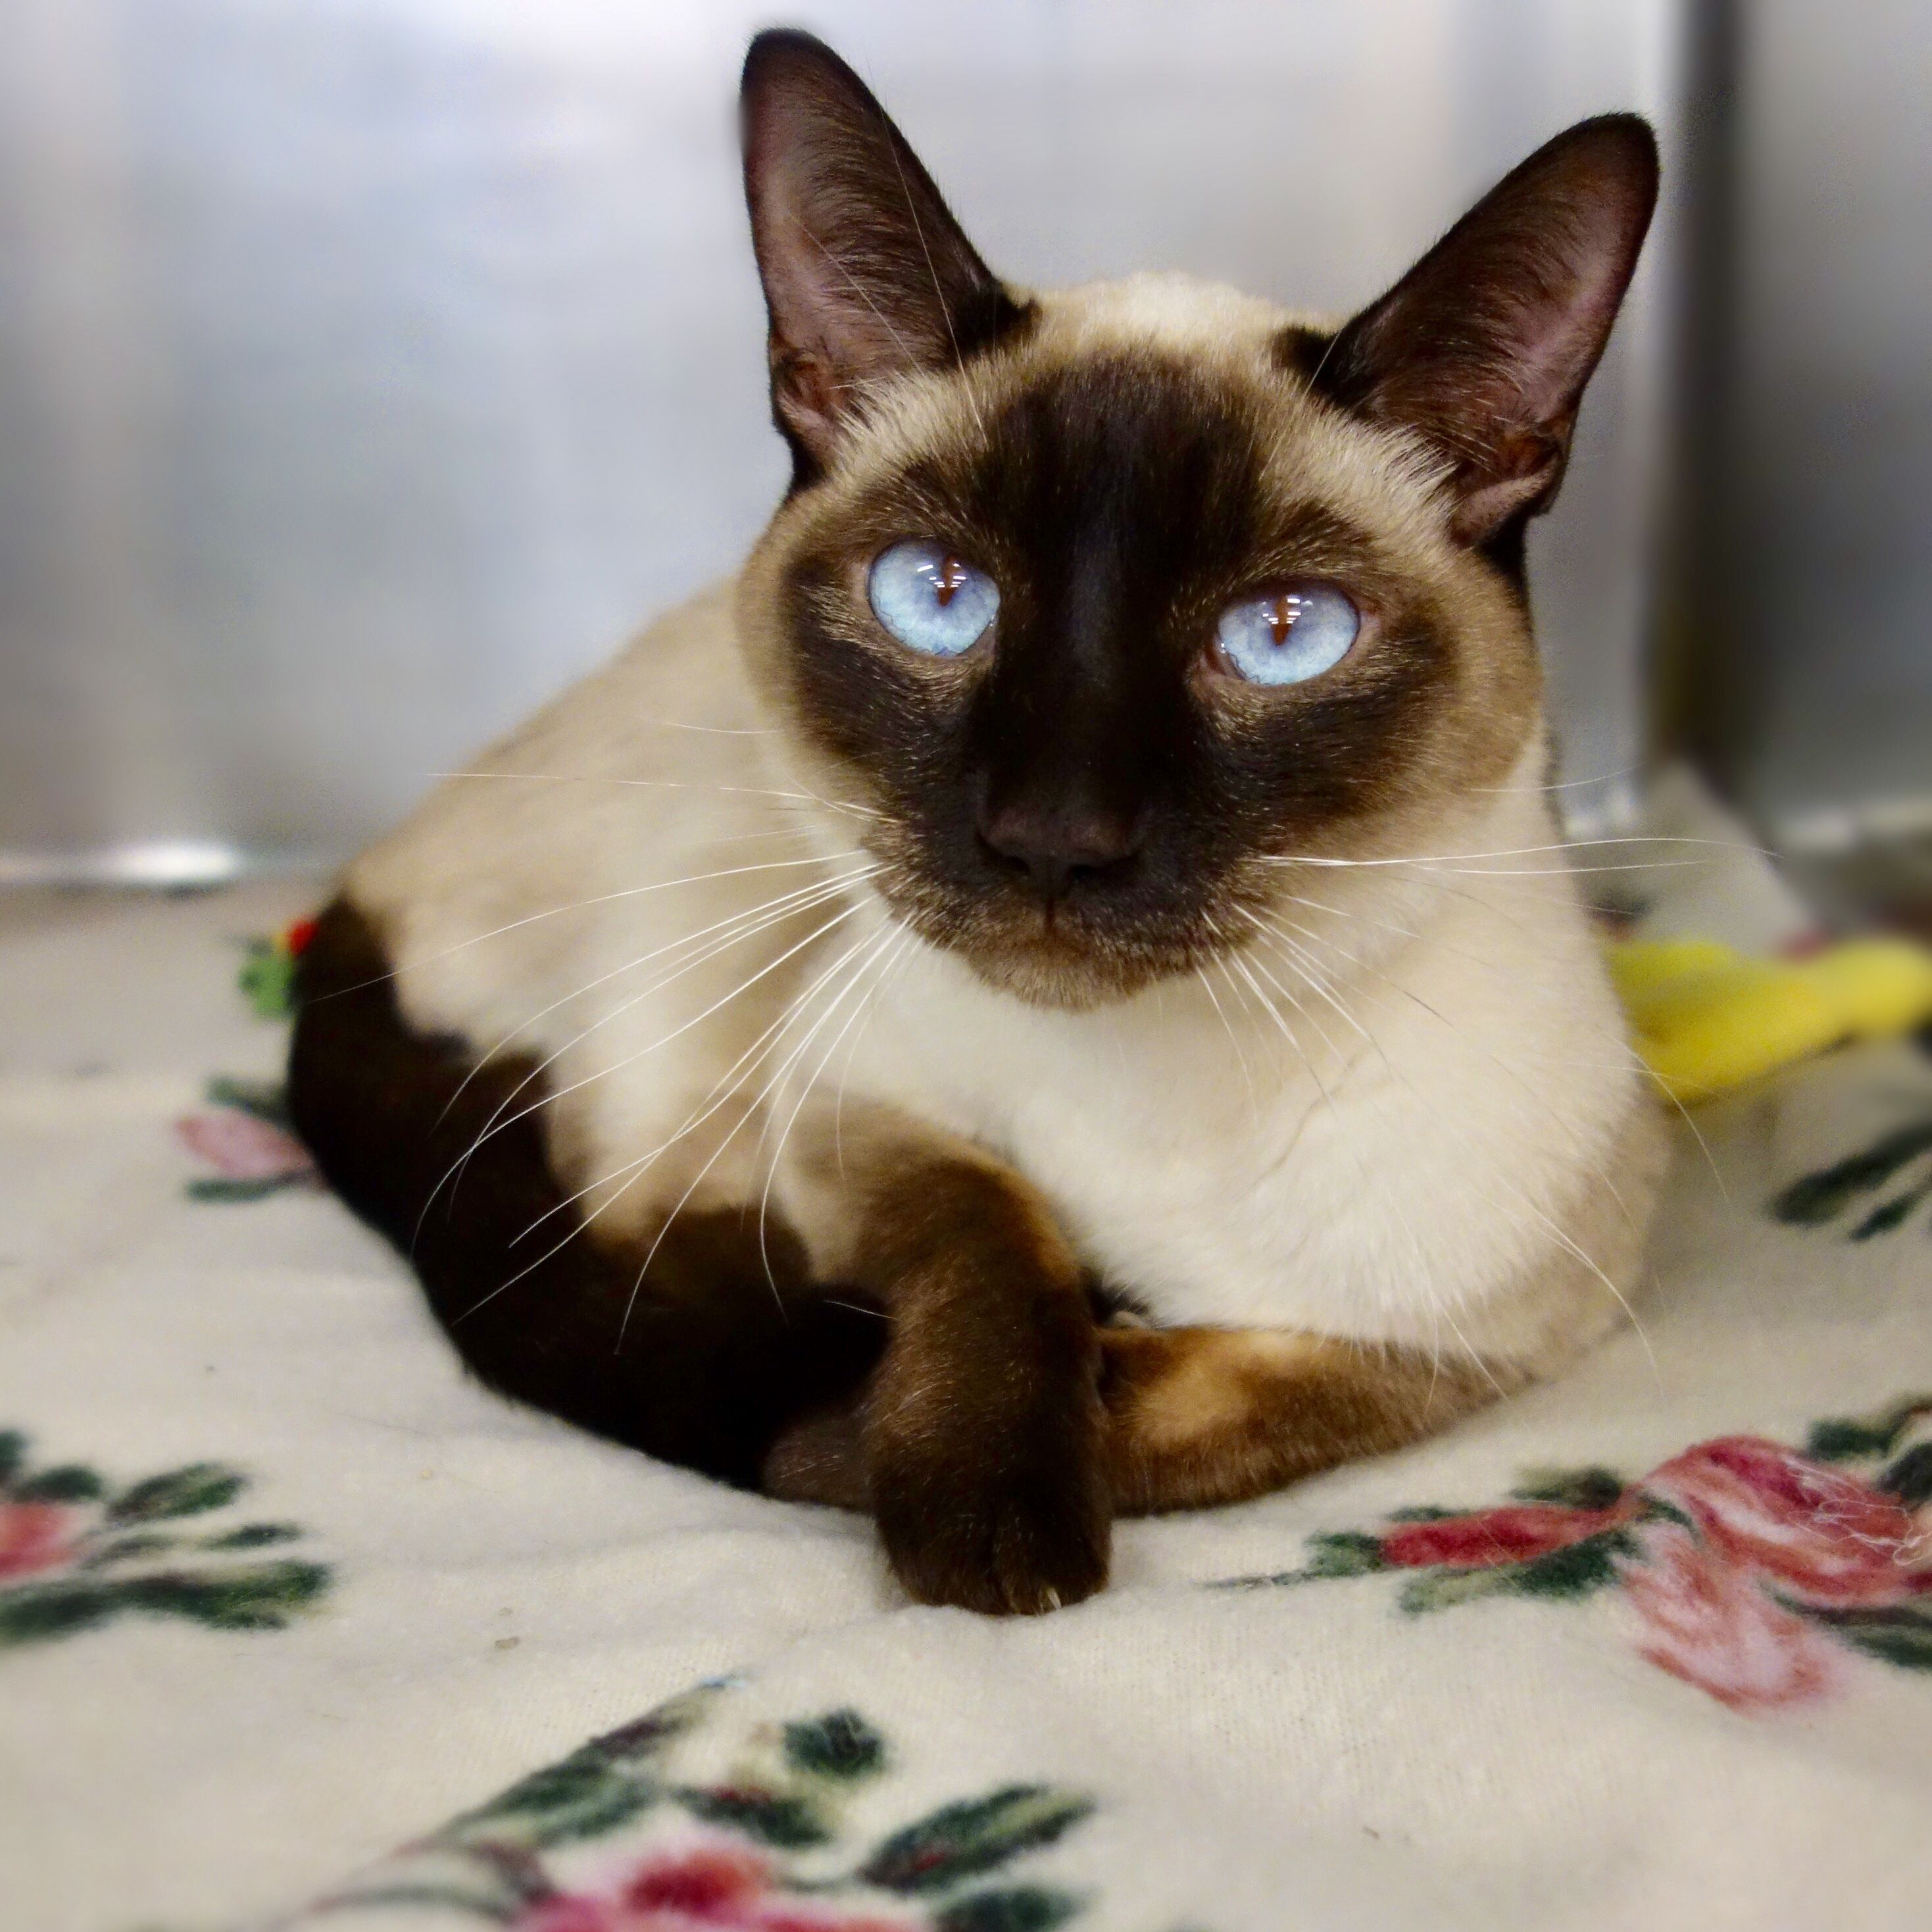 Mrs. Tam is an adoptable siamese searching for a forever